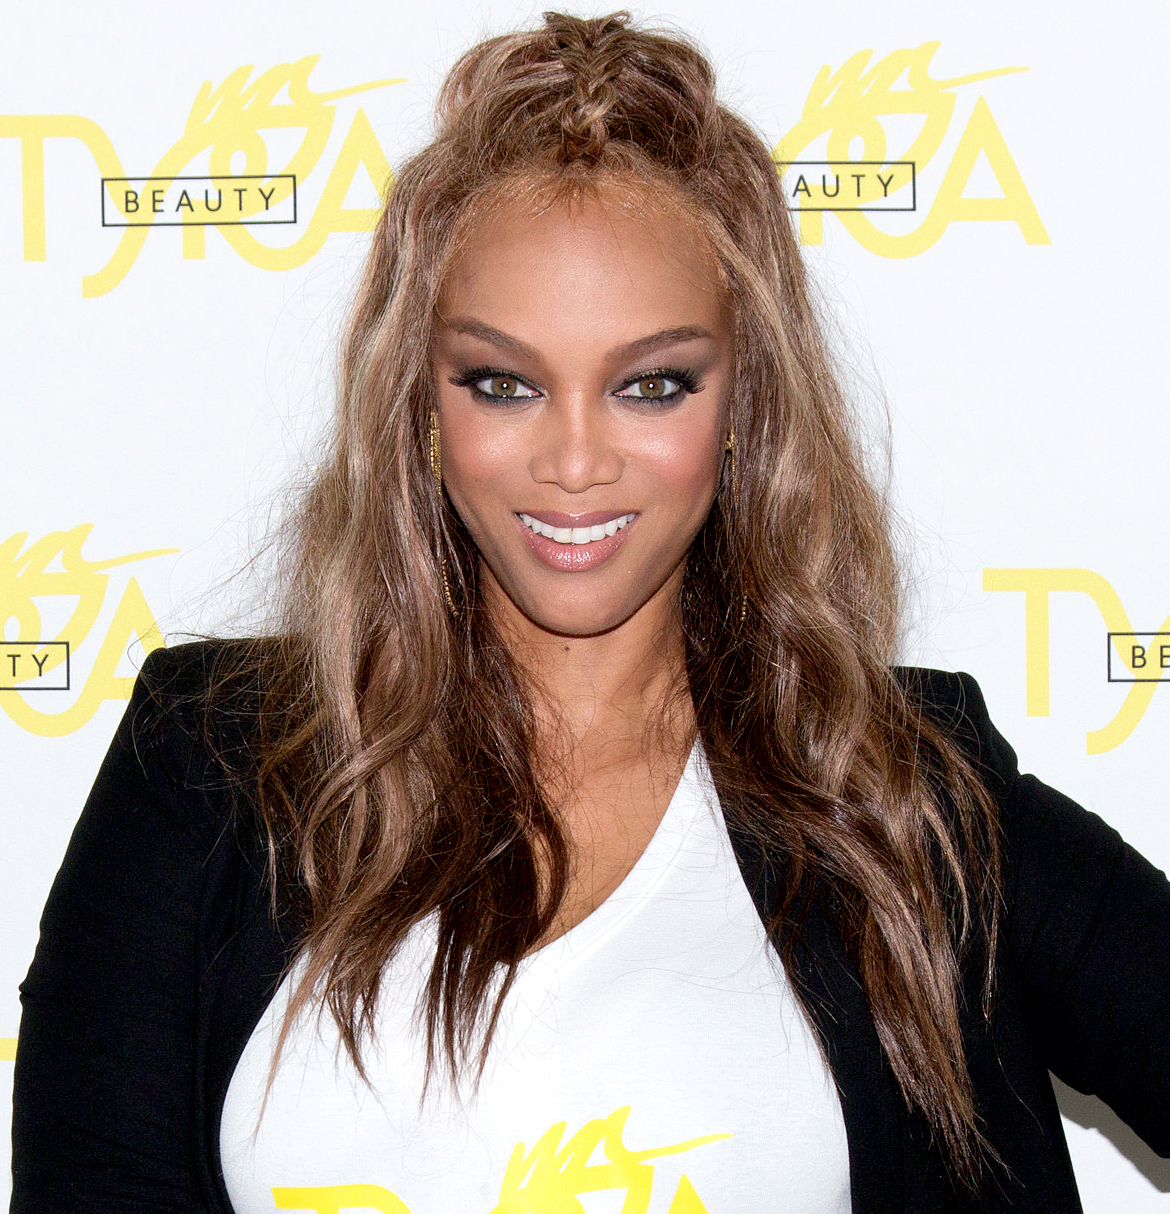 Tyra Banks attends the Fourth Annual Beautycon Festival Los Angeles at the Los Angeles Convention Center on July 9, 2016.